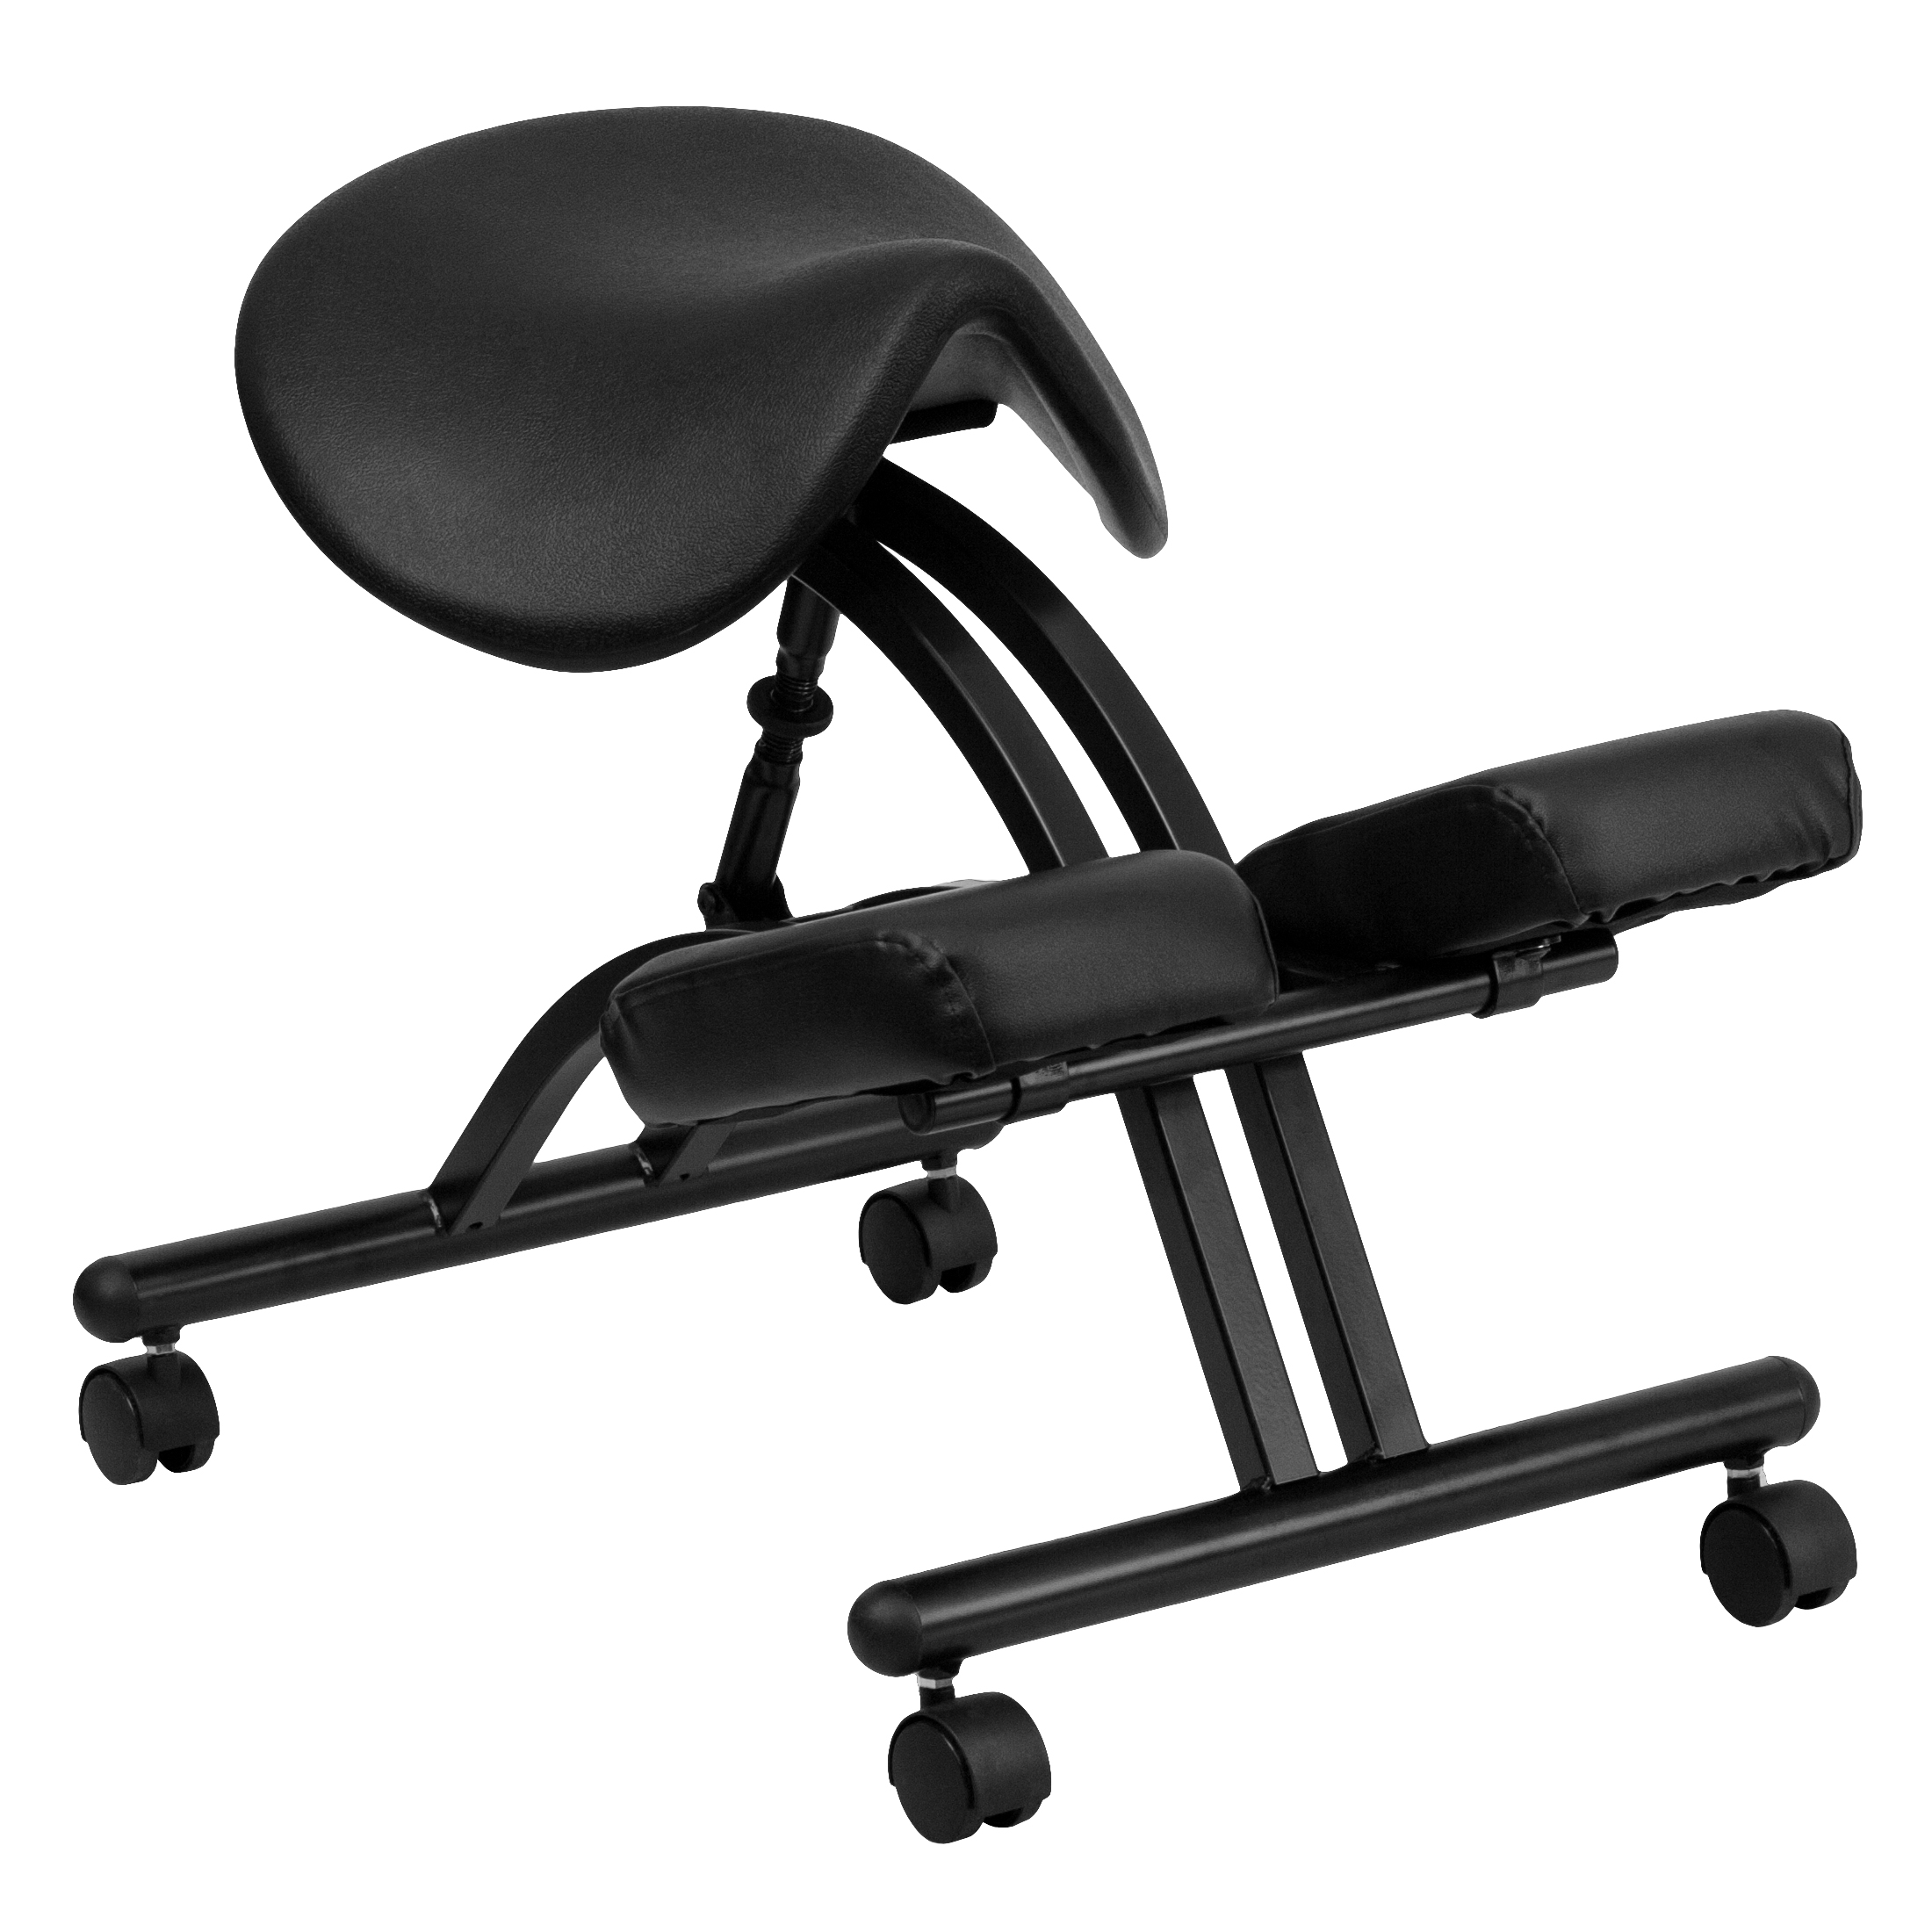 Flash ergonomic kneeling chair with black saddle seat by oj commercewl